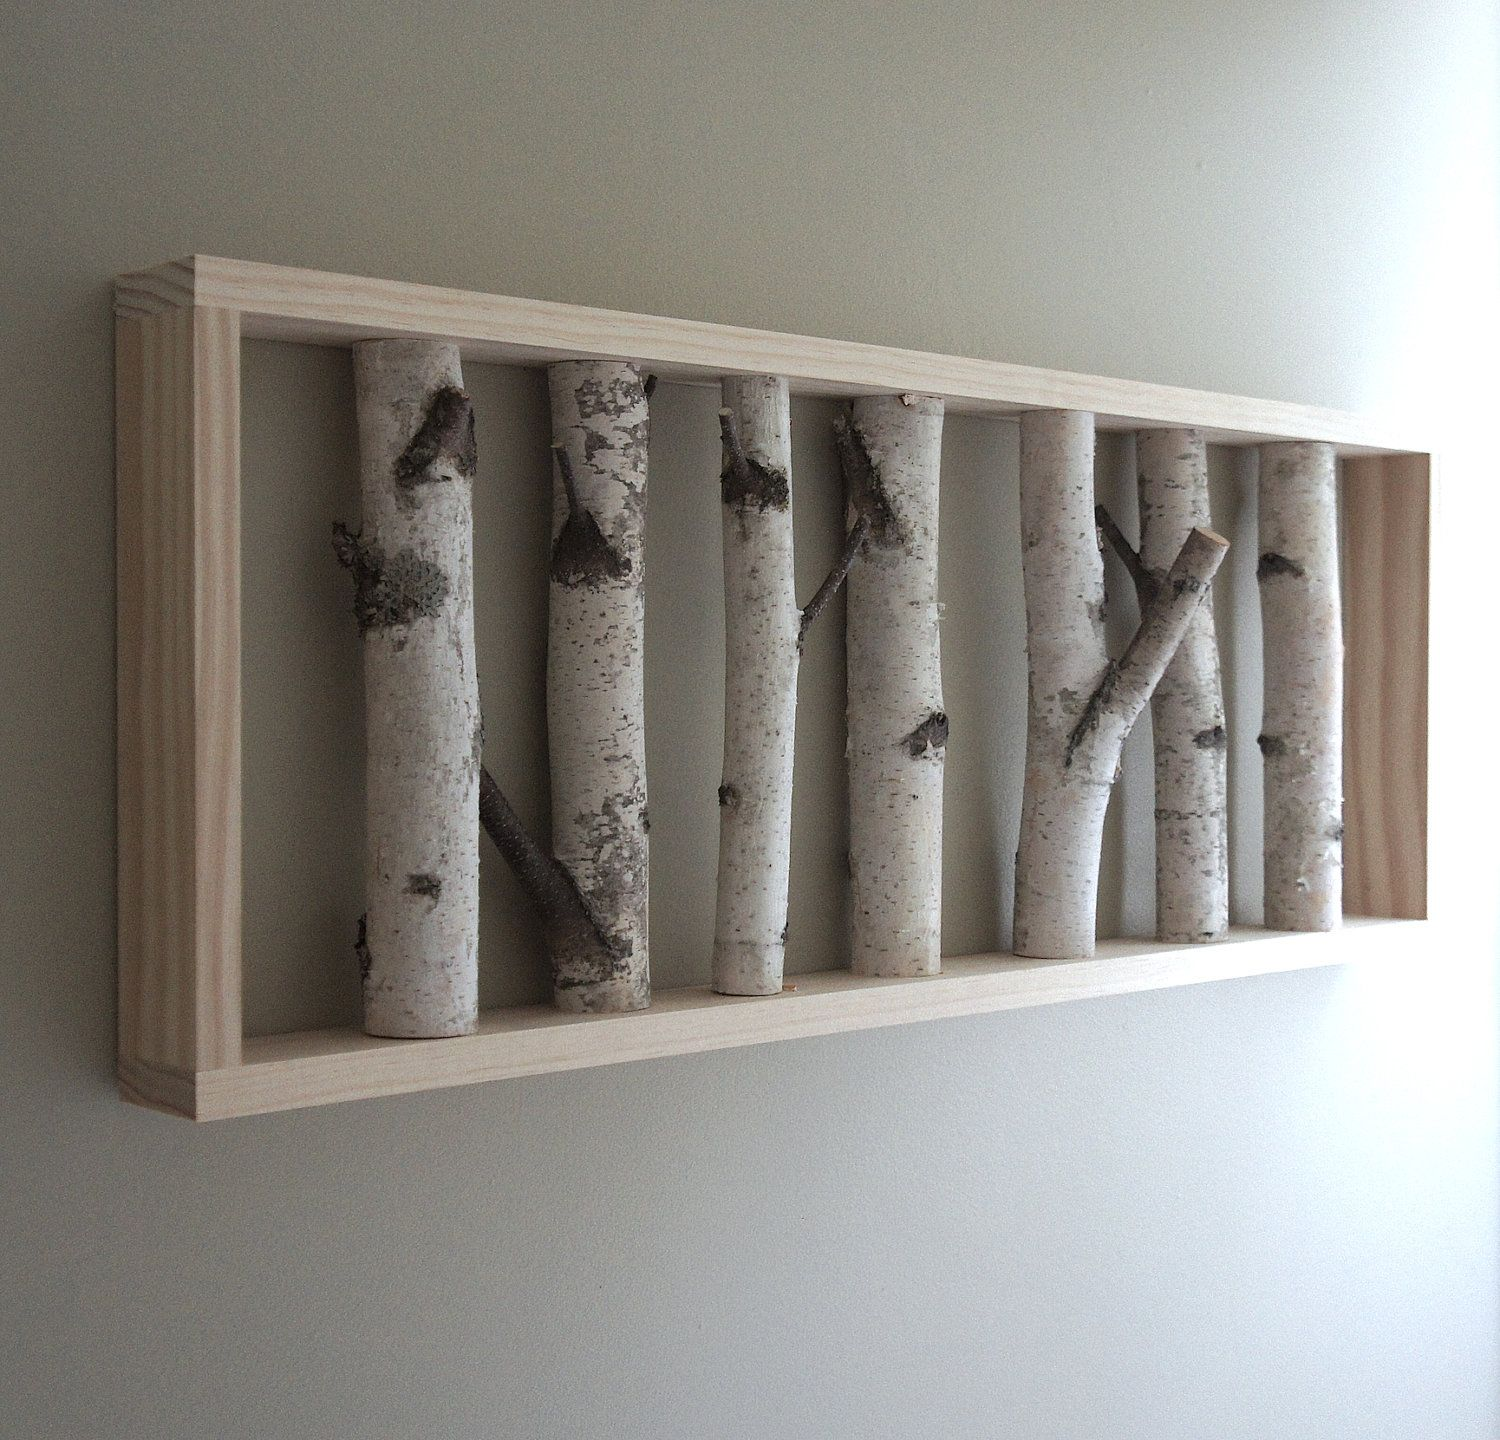 Rustic Wall Hangings white birch forest wall art - 36 x 12, birch branch decor, birch